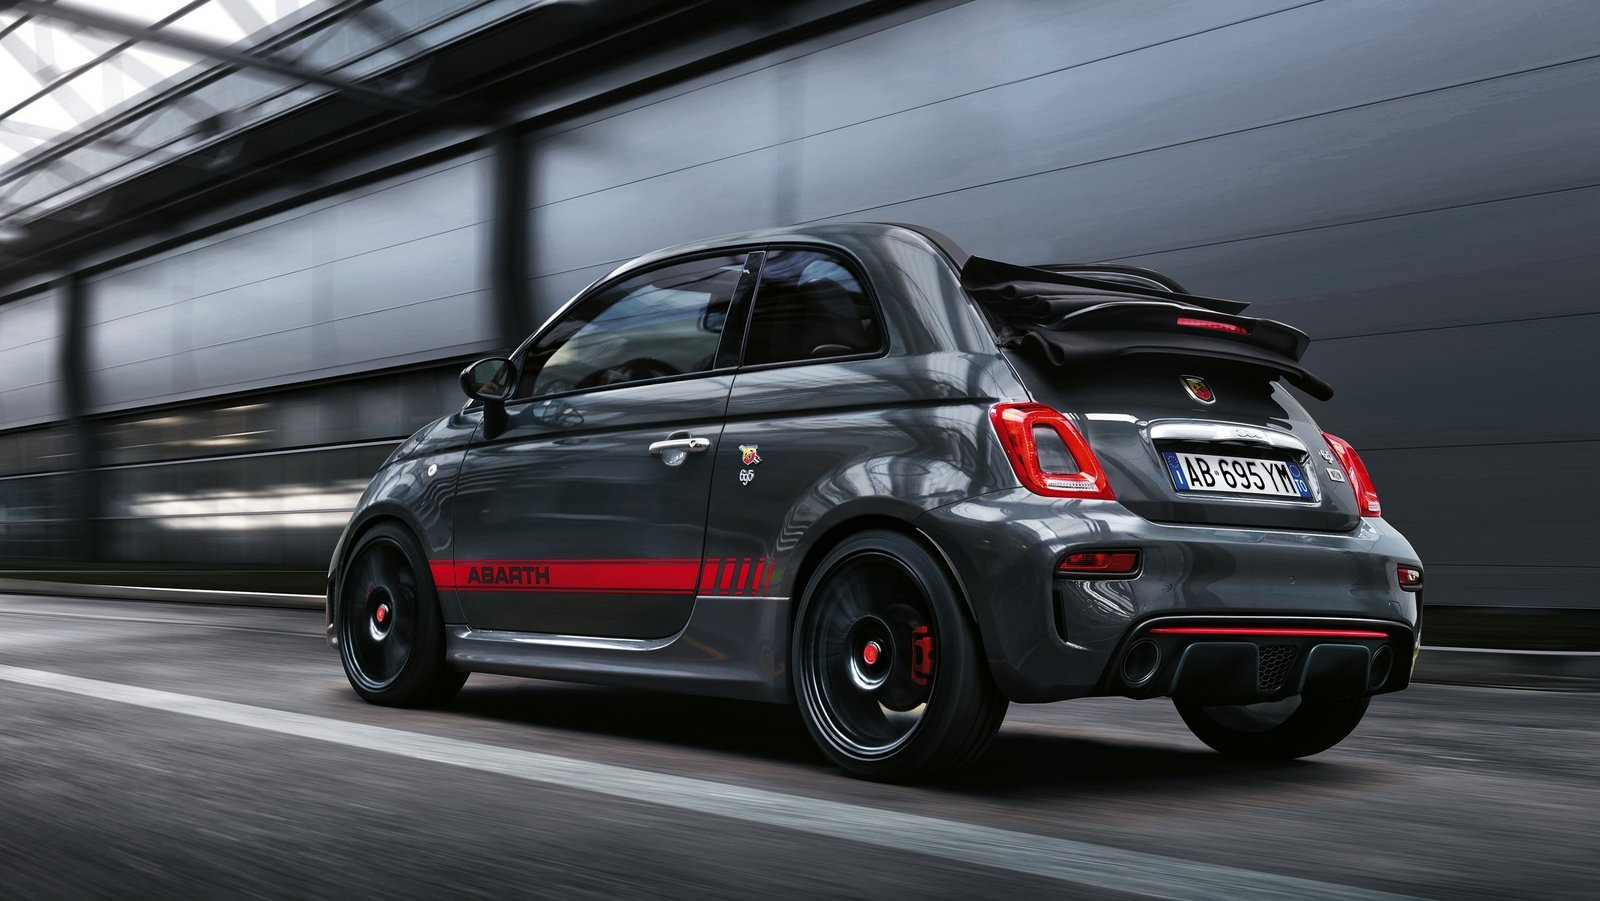 2017 abarth 695 xsr yamaha limited edition picture for Garage abarth paris